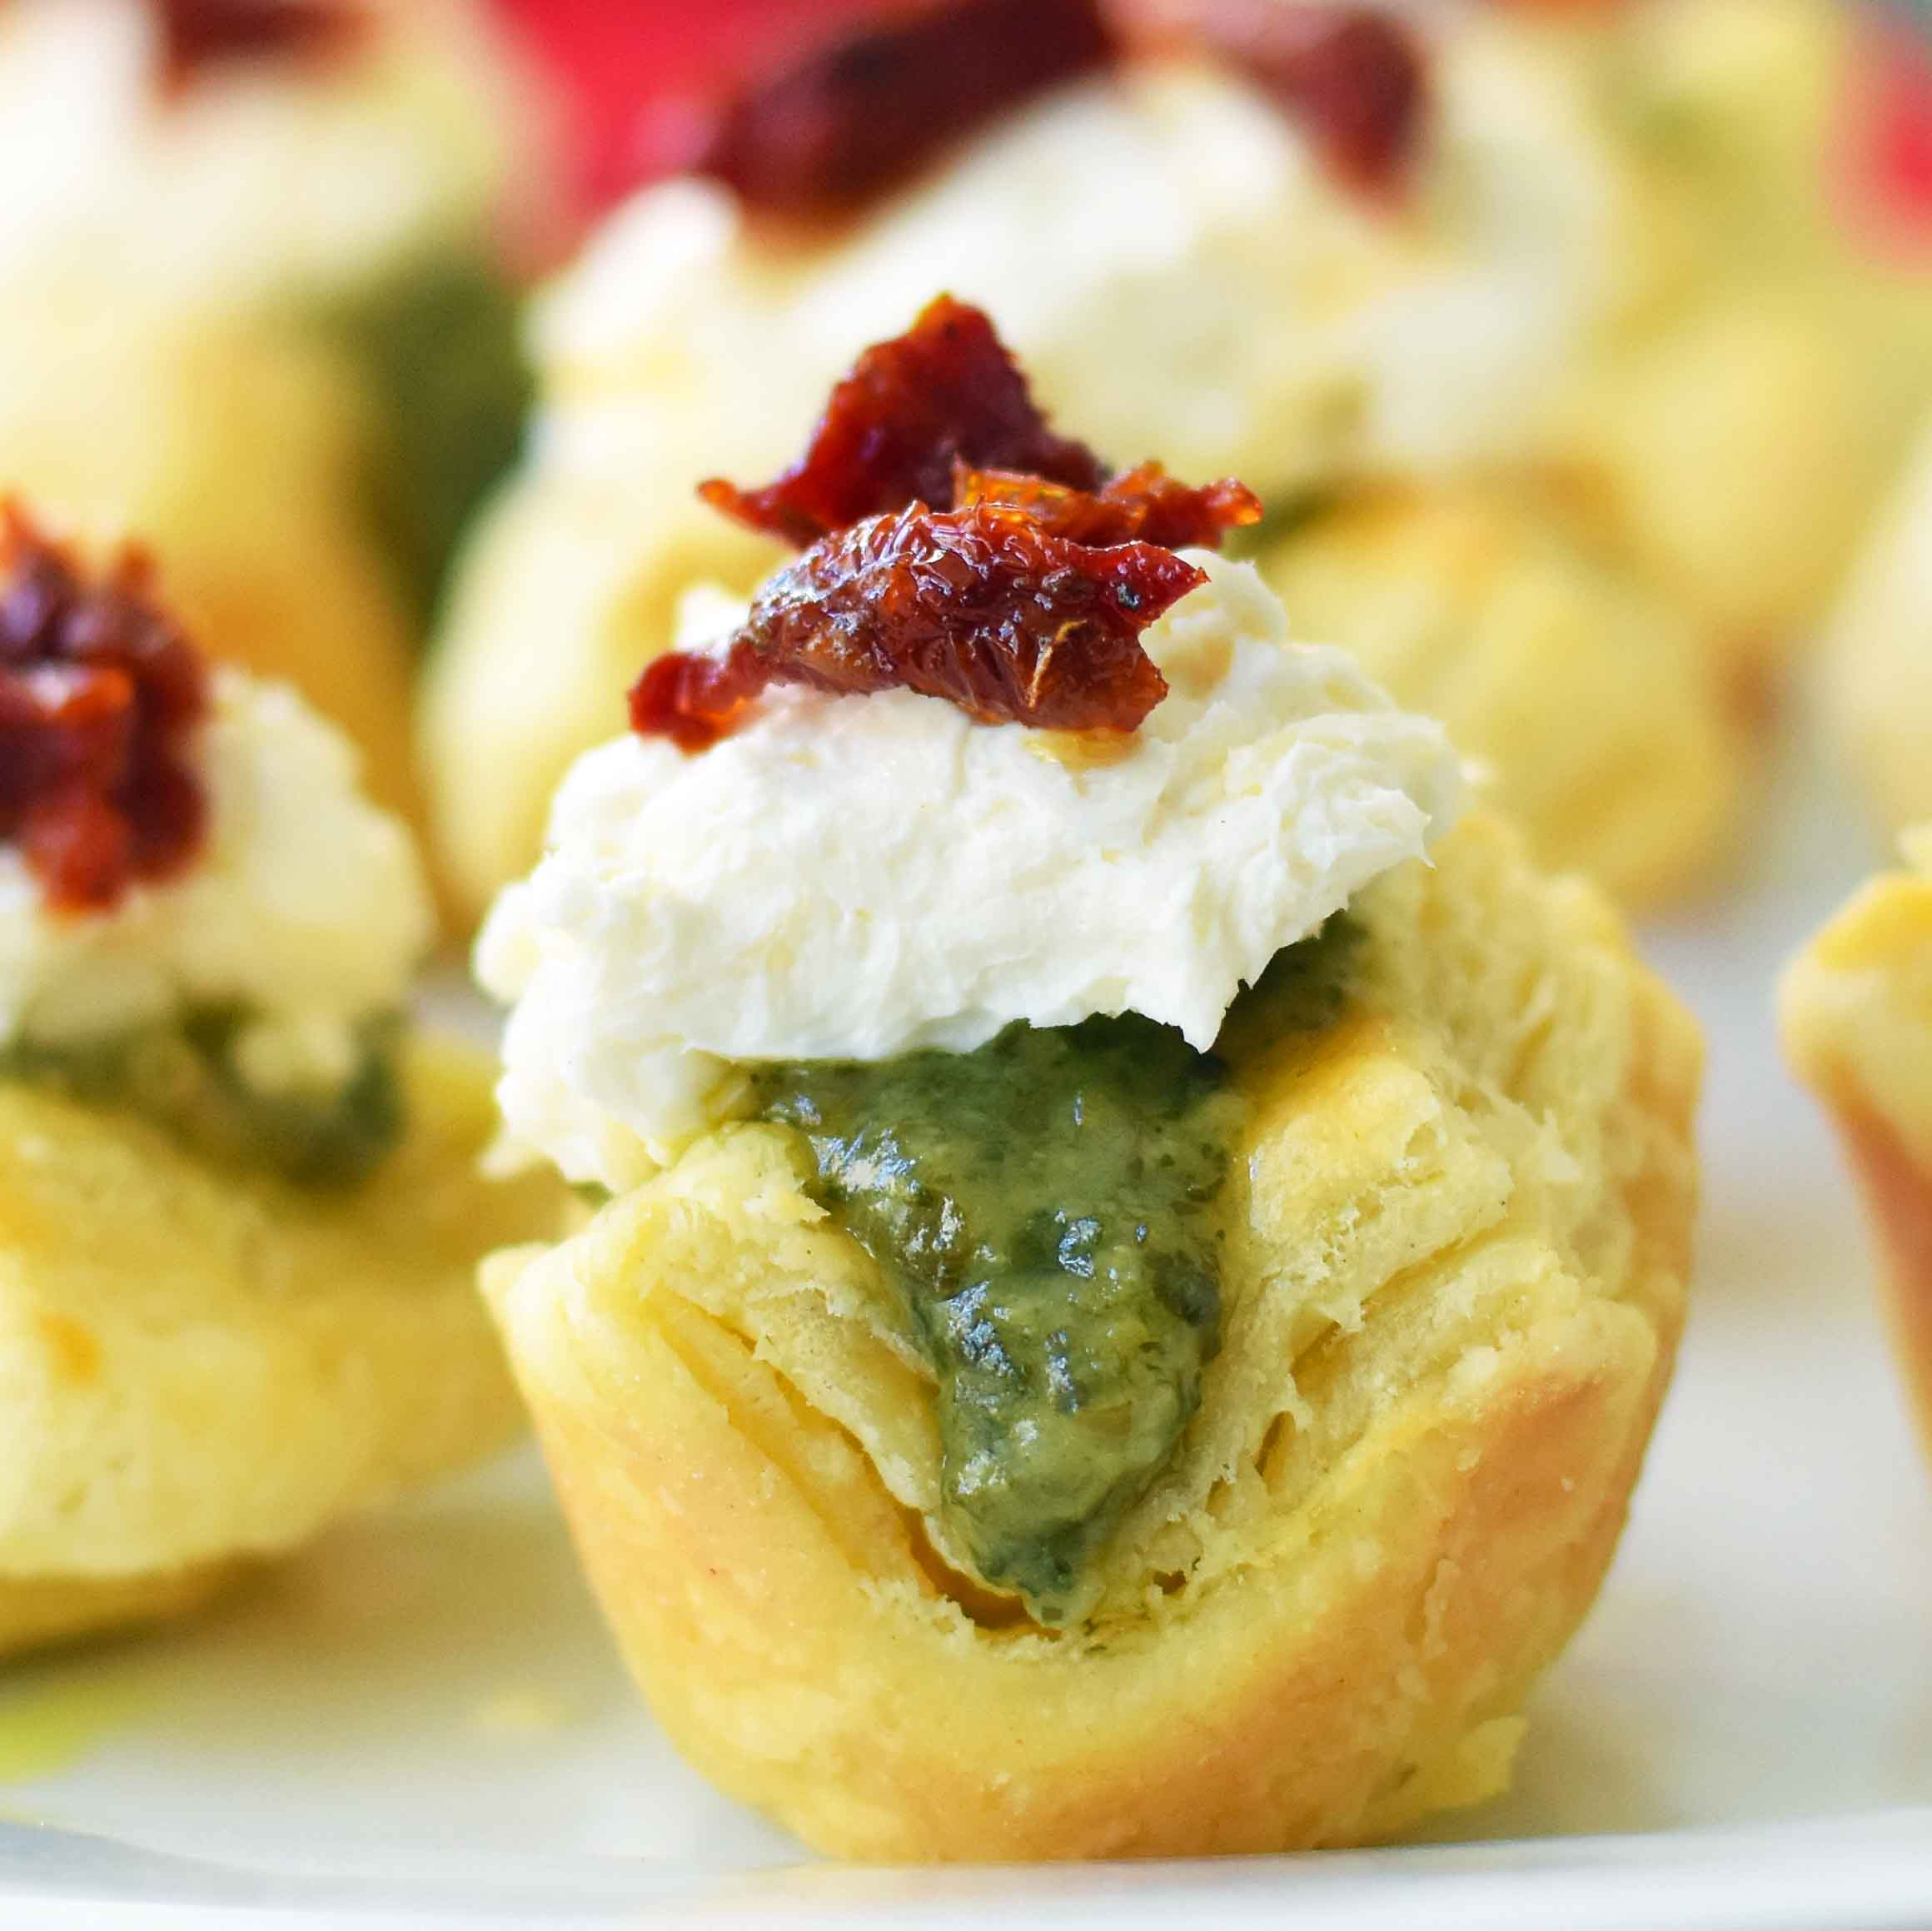 Pesto Parmesan Sundried Tomato Tartlets are made with flaky puff pastry baked until golden brown and filled with Buitoni freshly made pesto sauce, a parmesan goat cheese cream cheese layer, and topped with sweet sundried tomatoes. A beautiful and festive holiday appetizer. www.modernhoney.com @buitoniusa #sponsored